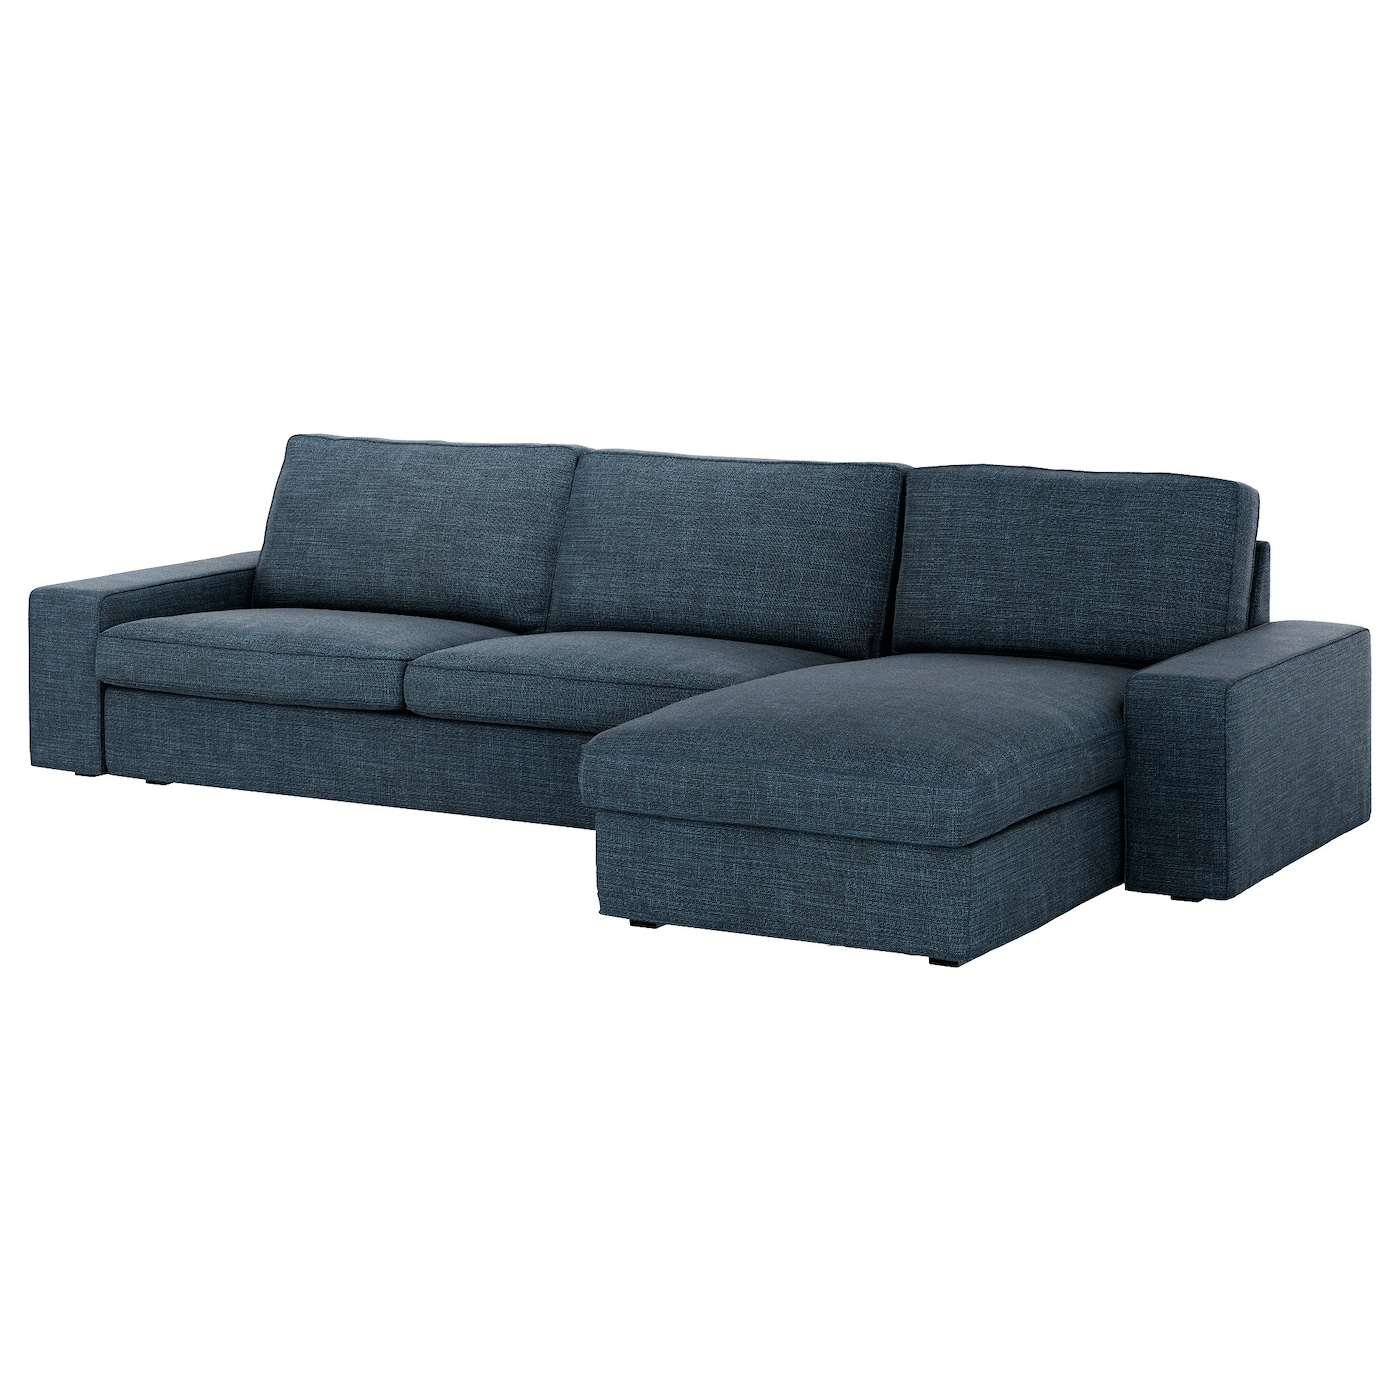 Kivik 4 seat sofa with chaise longue hillared dark blue ikea - Chaise longue jardin ikea ...